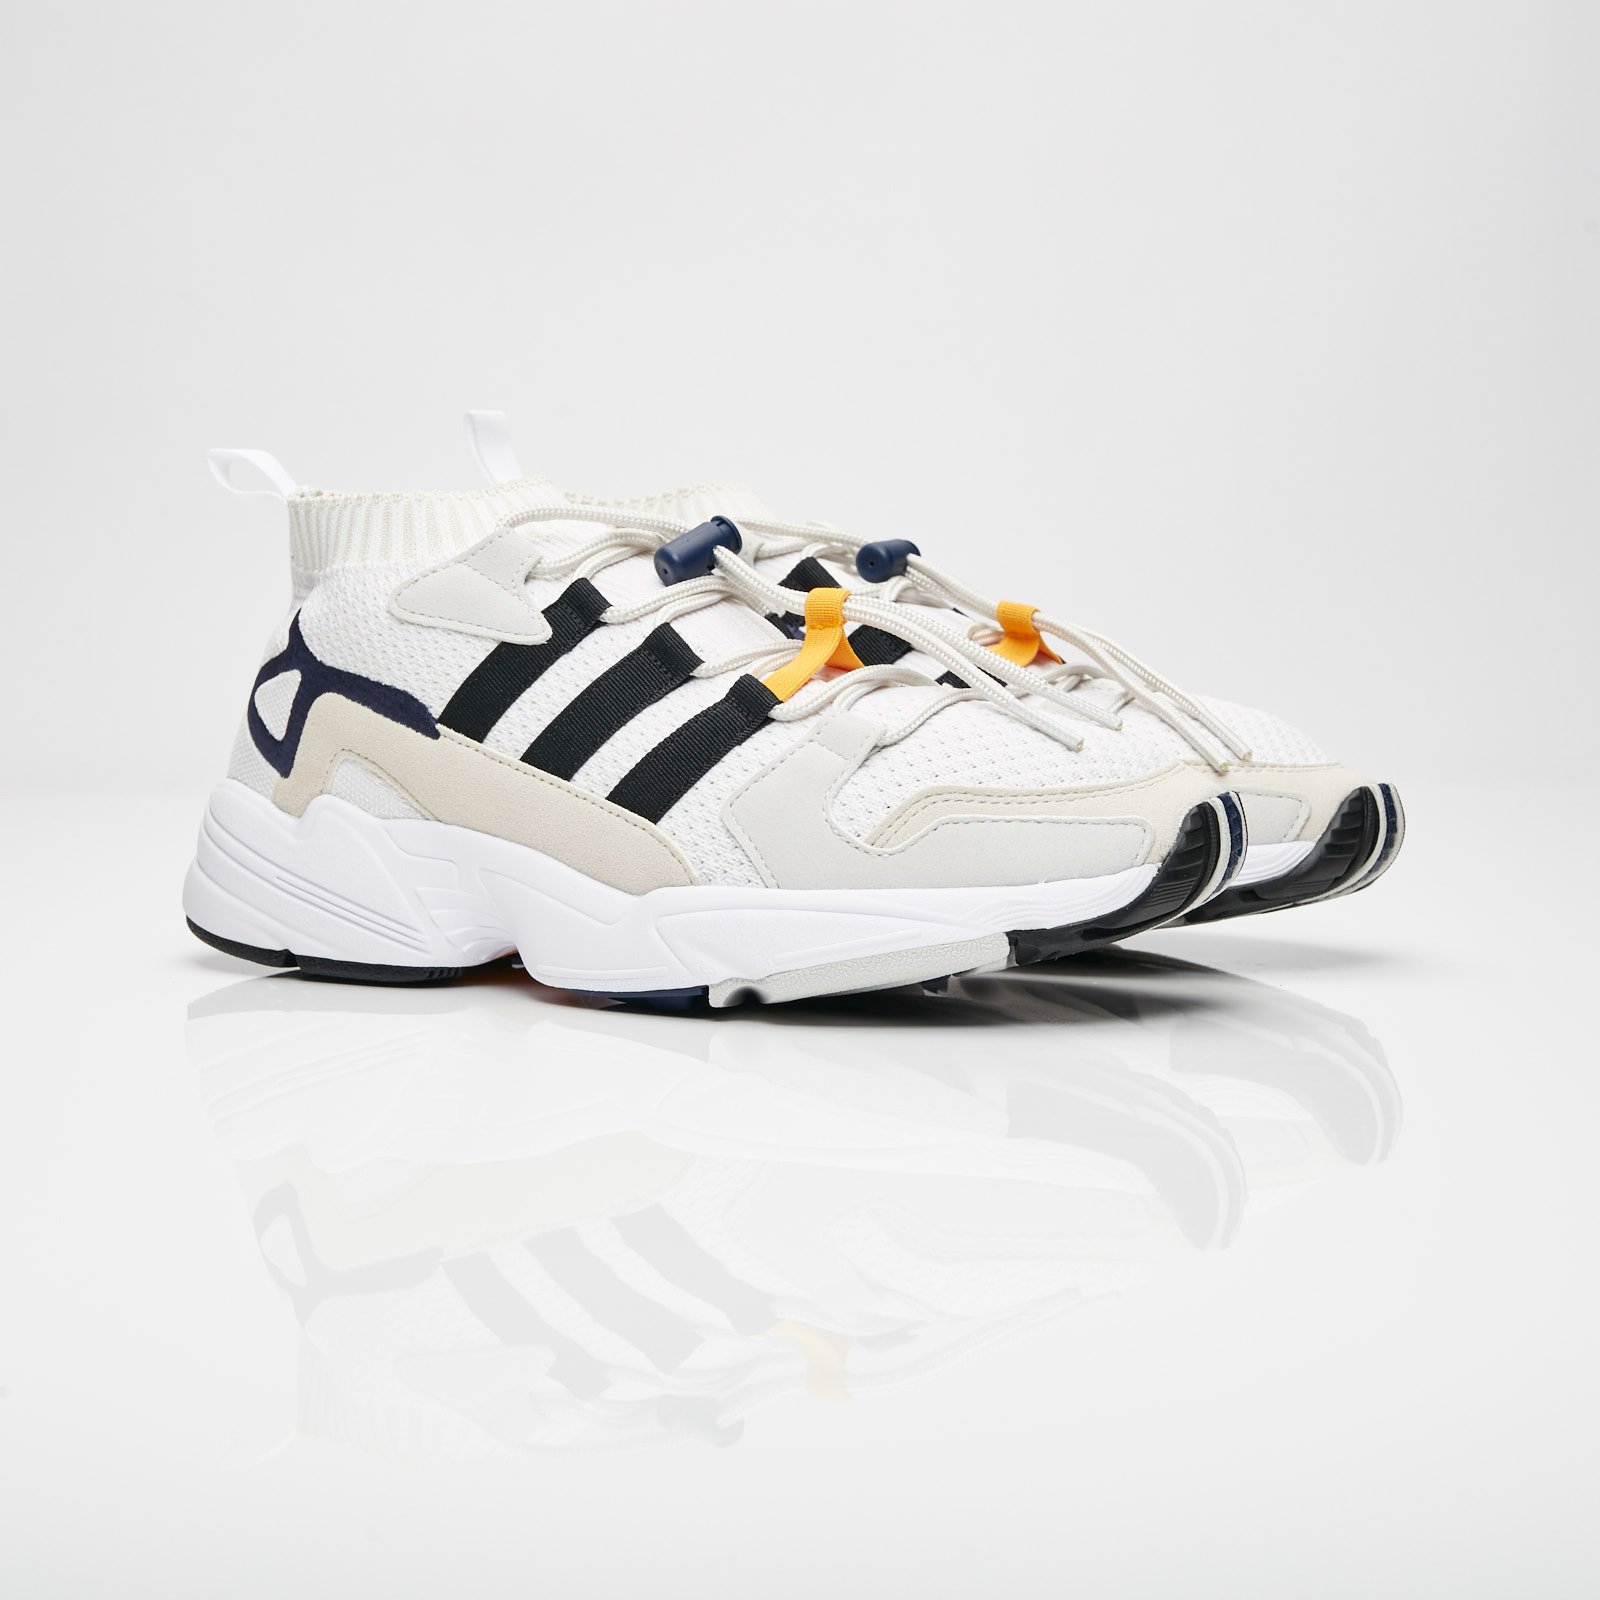 uk availability 100% authentic better adidas Falcon Workshop - Bc0695 - Sneakersnstuff | sneakers ...